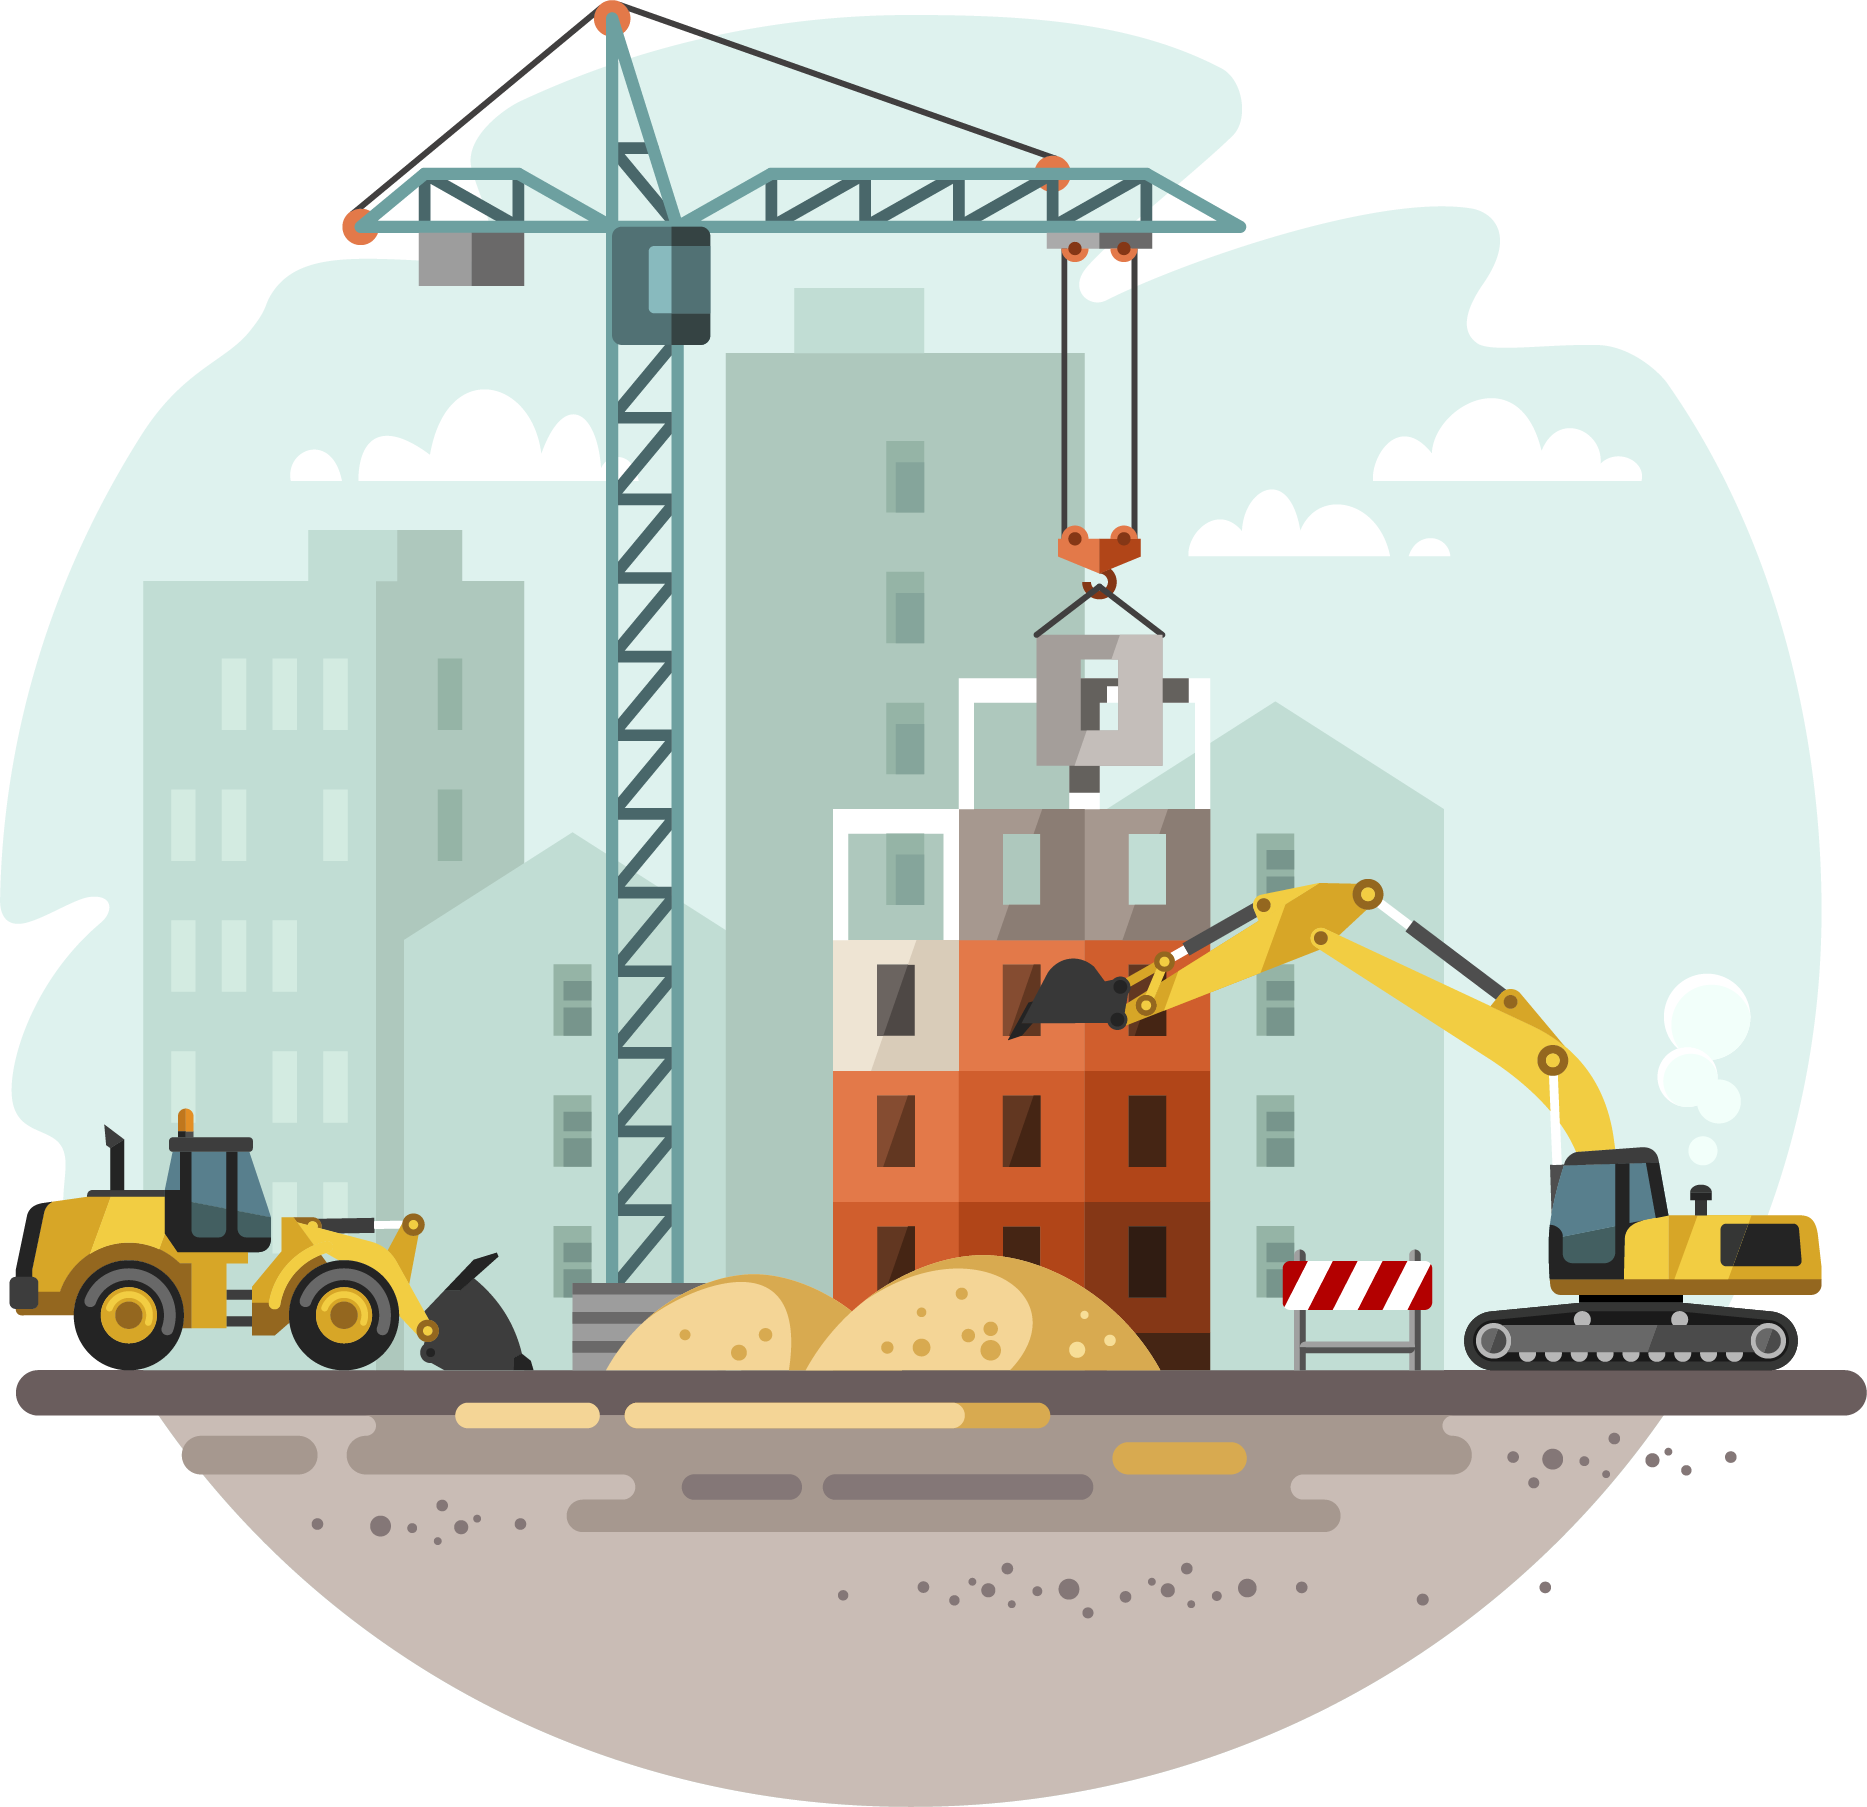 Construction Background Checks   Backgrounds Online 1867x1807